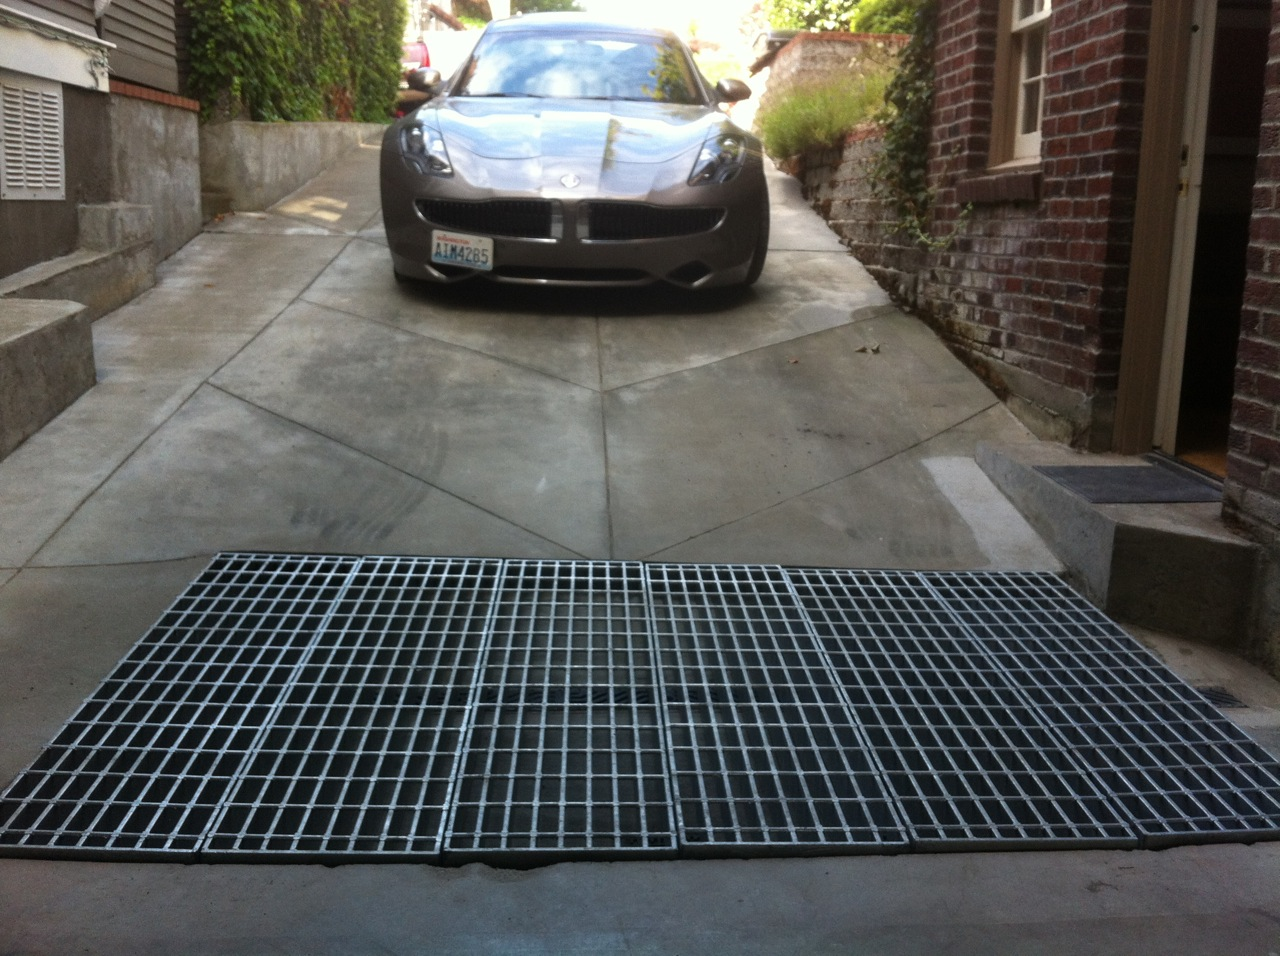 seattle-laurelhurst-electric-car-grate.jpg